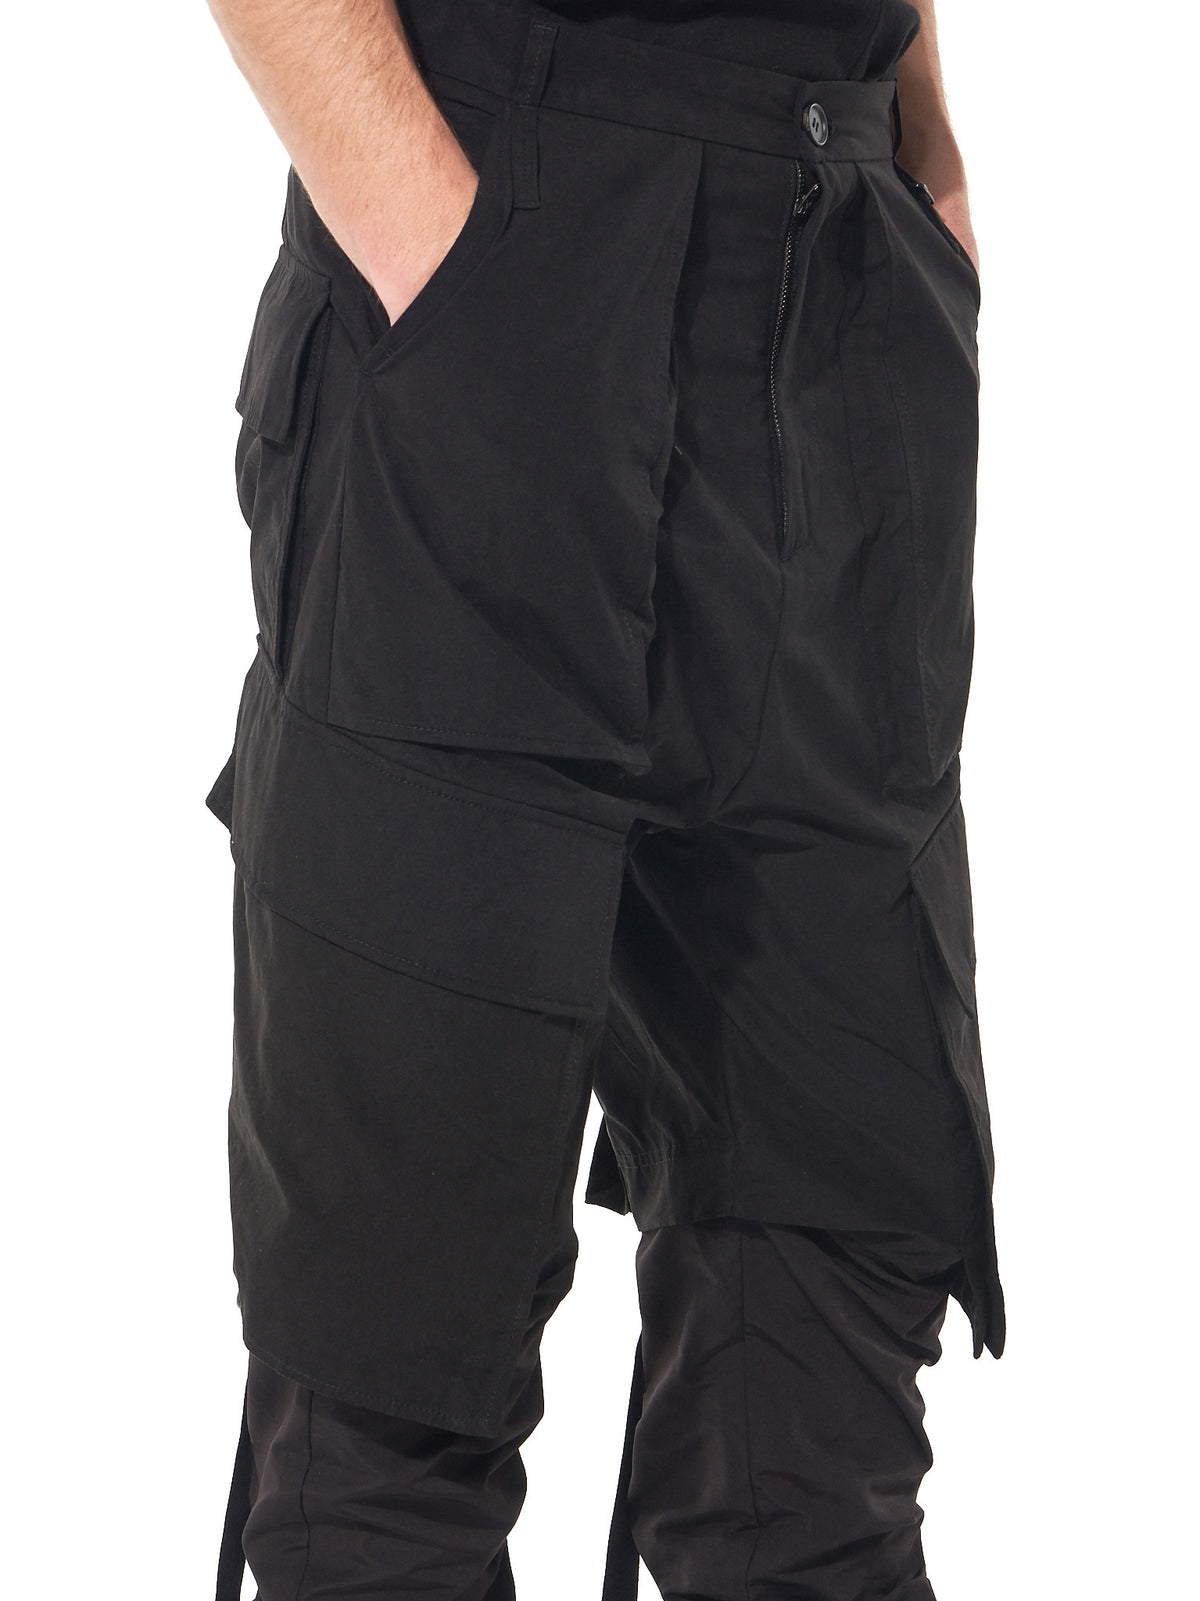 Patchwork Trousers  (17SSBMTR-01 BLACK) - H. Lorenzo